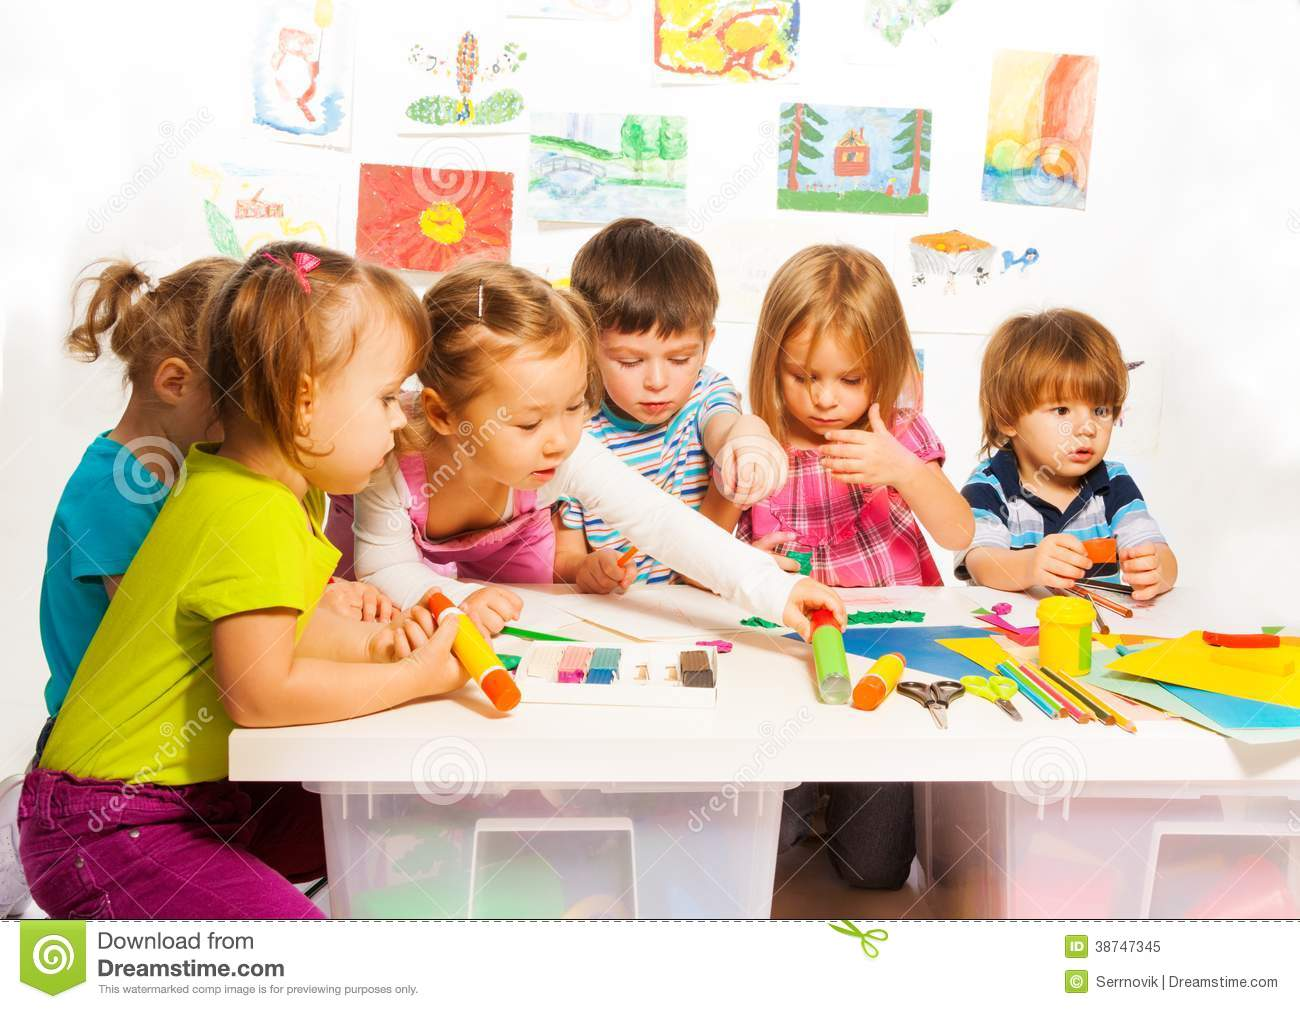 Group Of Happy Kids Painting And Stock Image - Image of gluing, glue ...